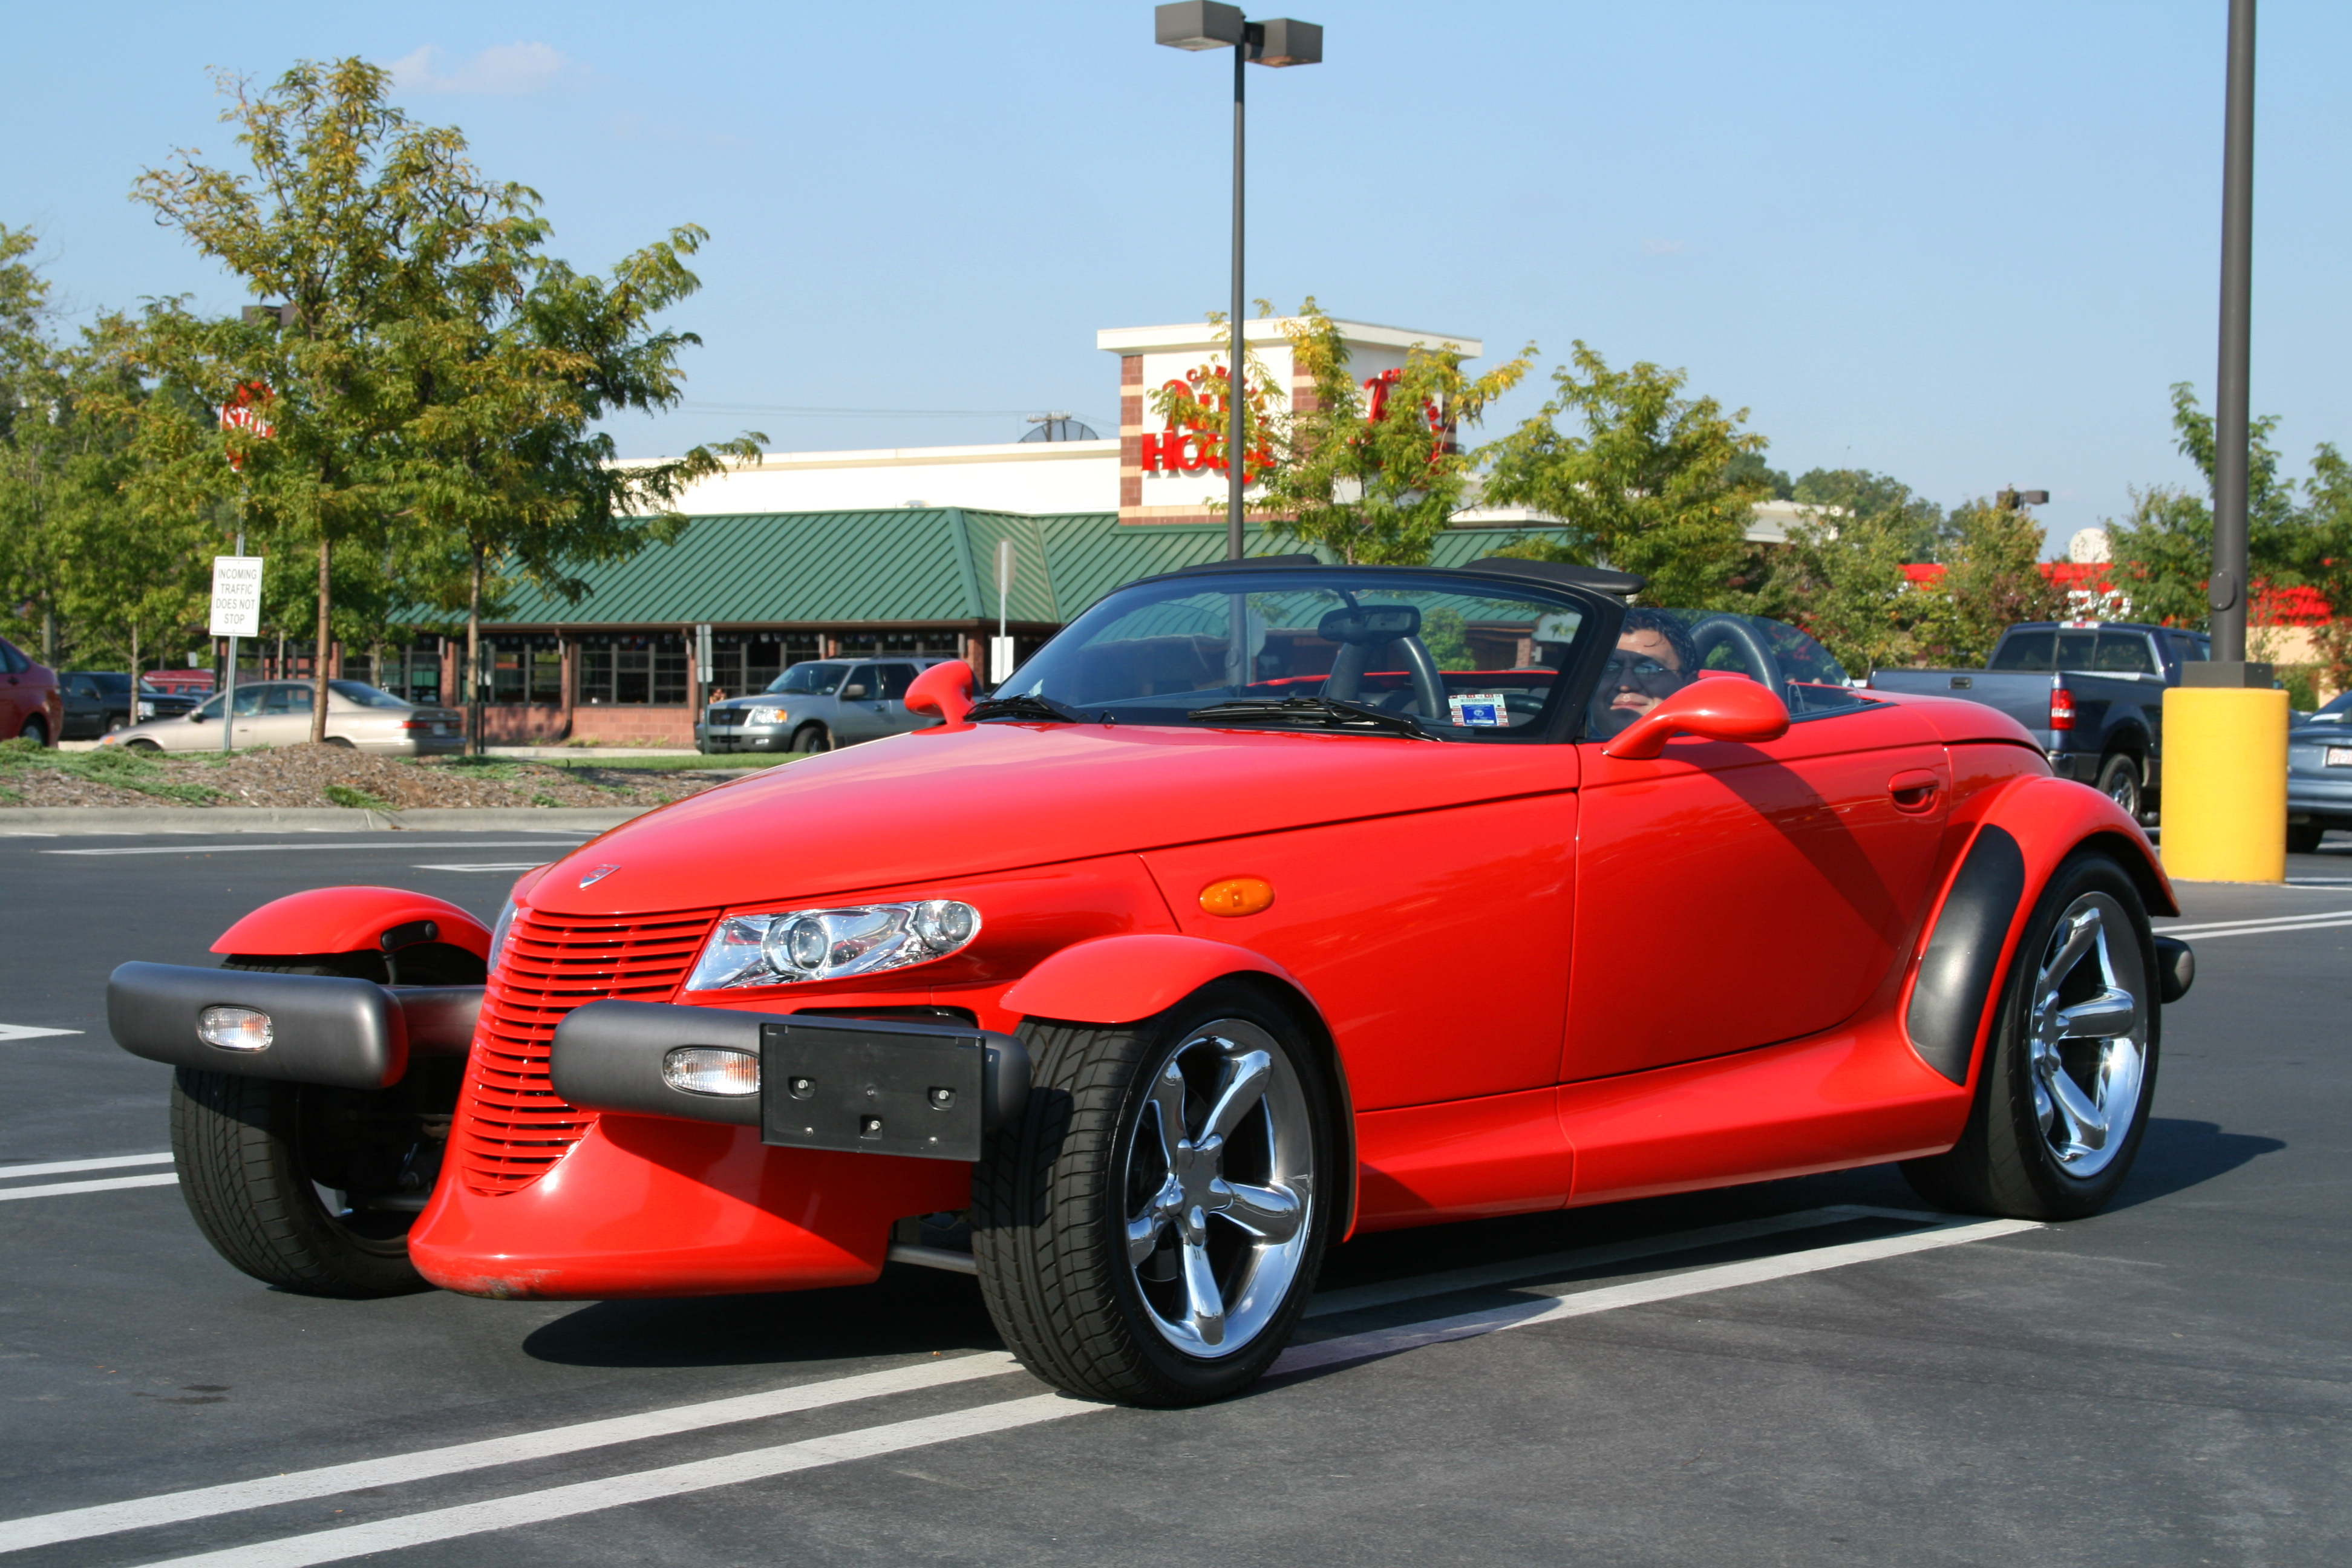 Plymouth prowler vs. chrysler prowler